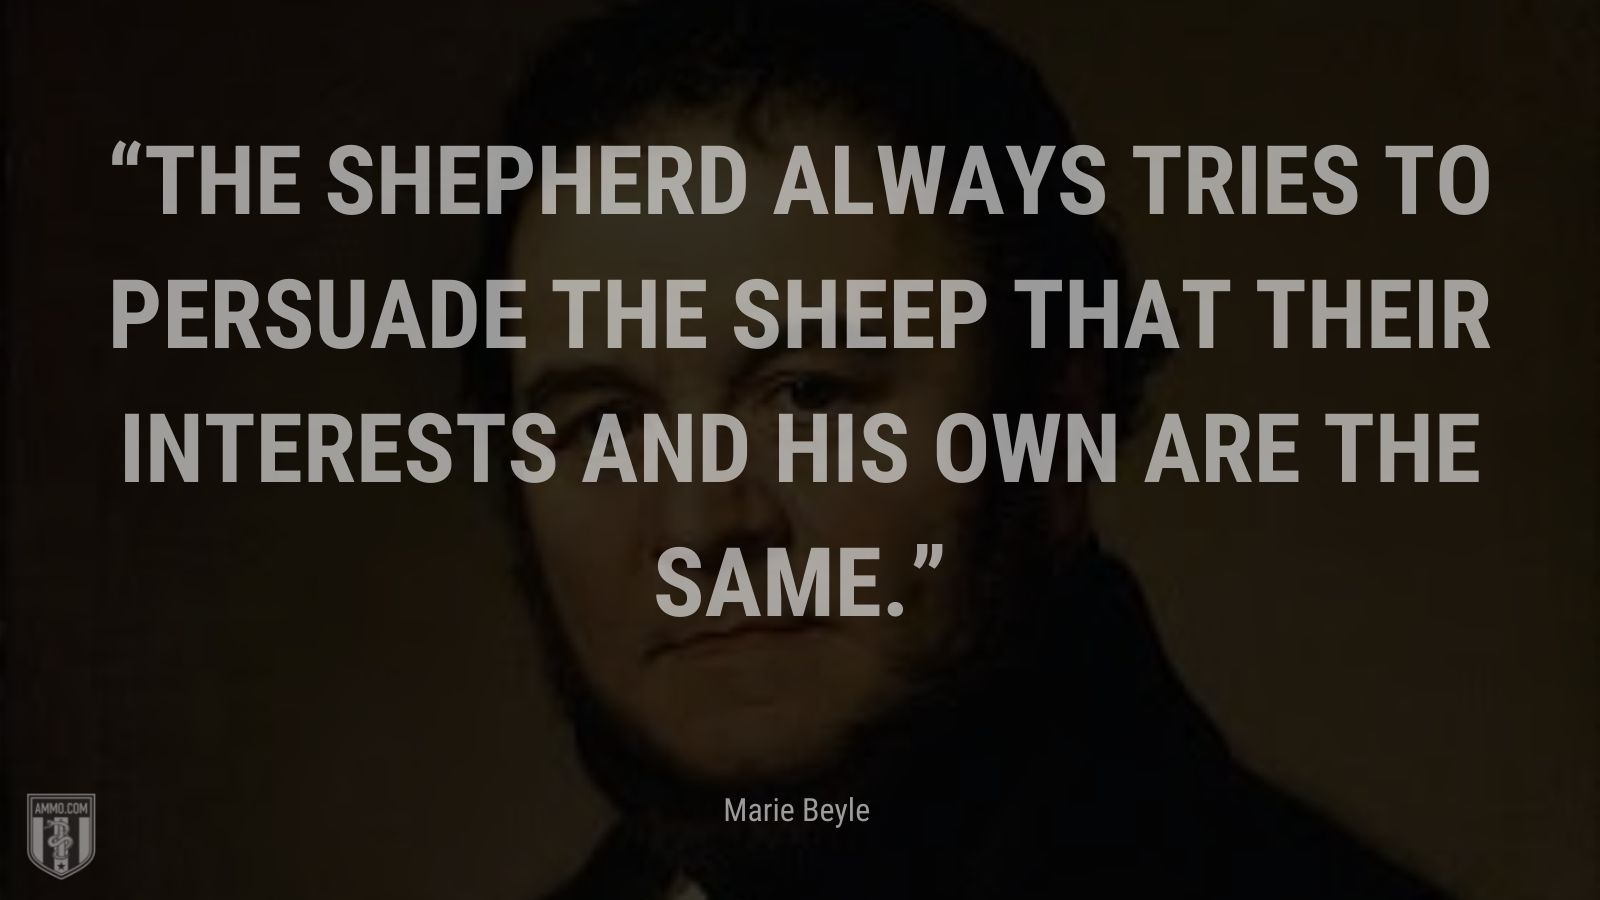 """""""The shepherd always tries to persuade the sheep that their interests and his own are the same."""" - Marie Beyle"""